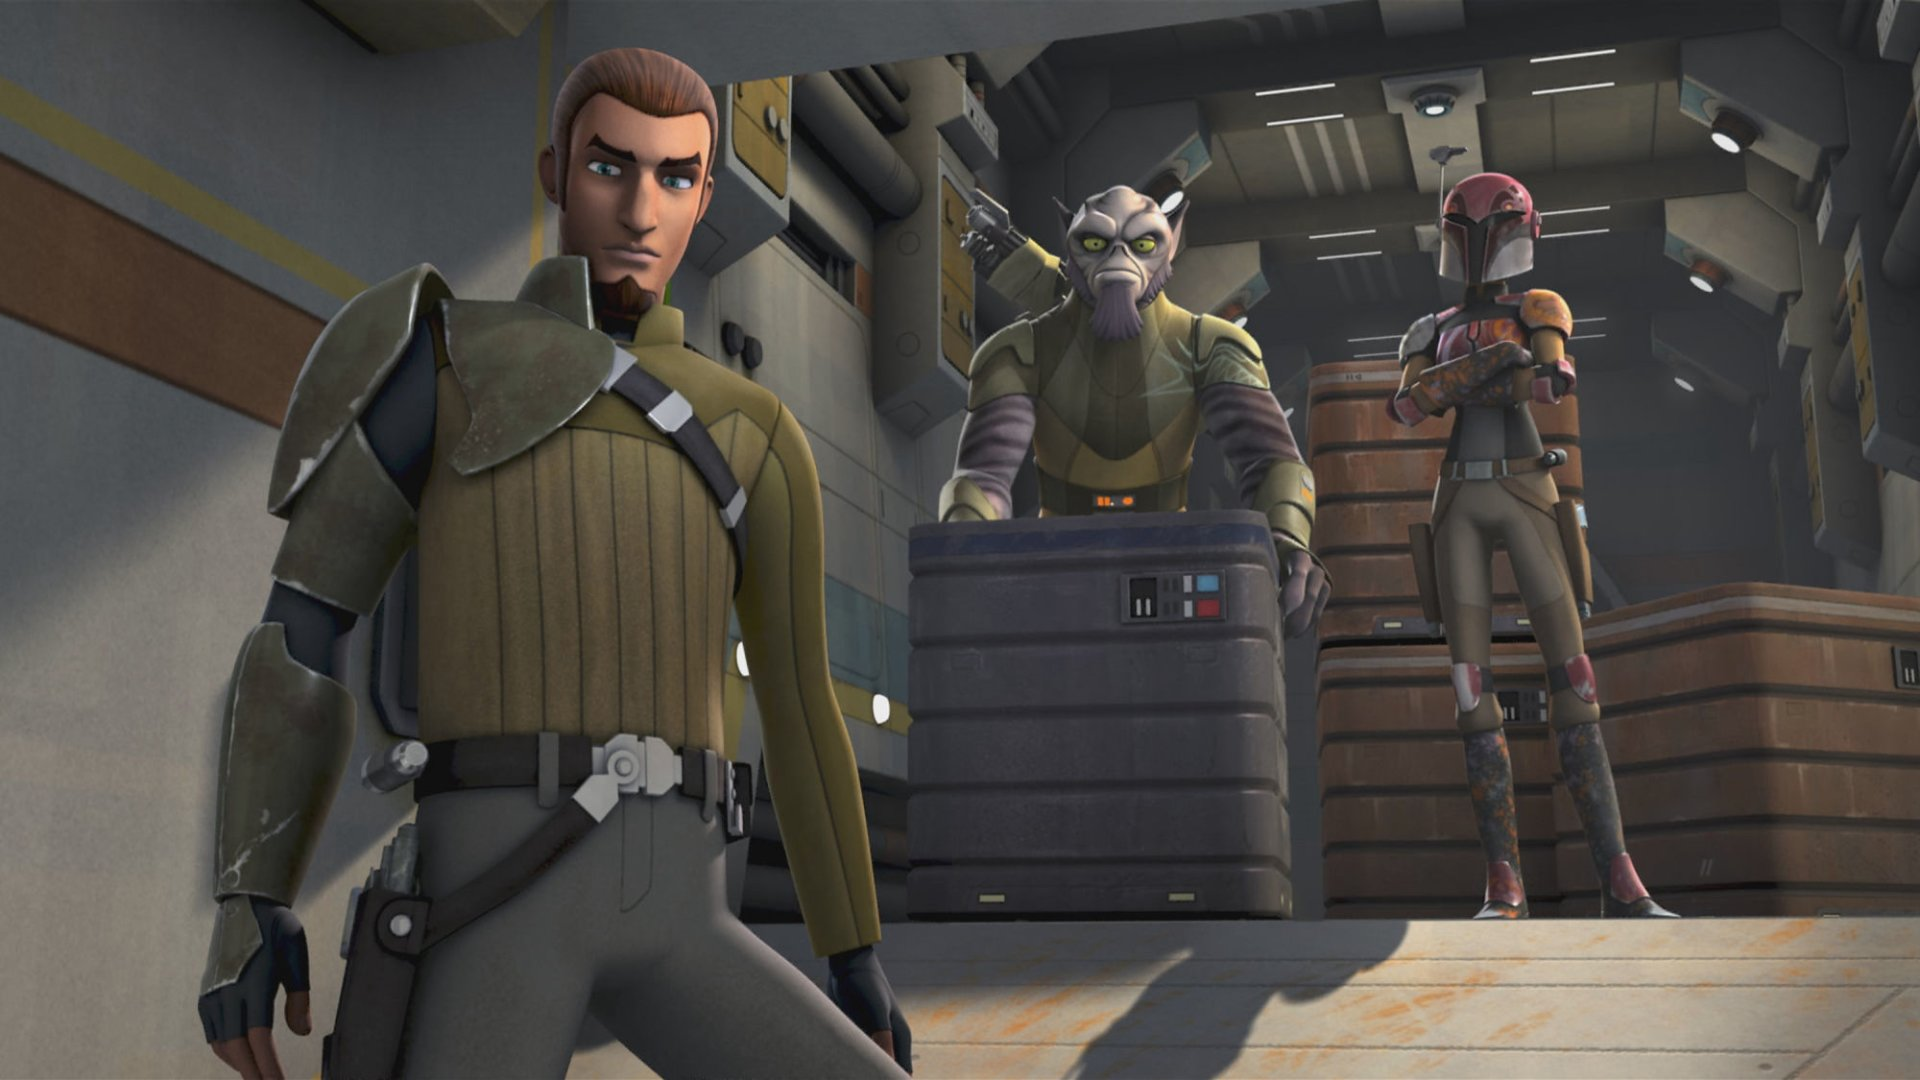 TV Show - Star Wars Rebels  Zeb Orrelios Kanan Jarrus Sabine Wren Wallpaper